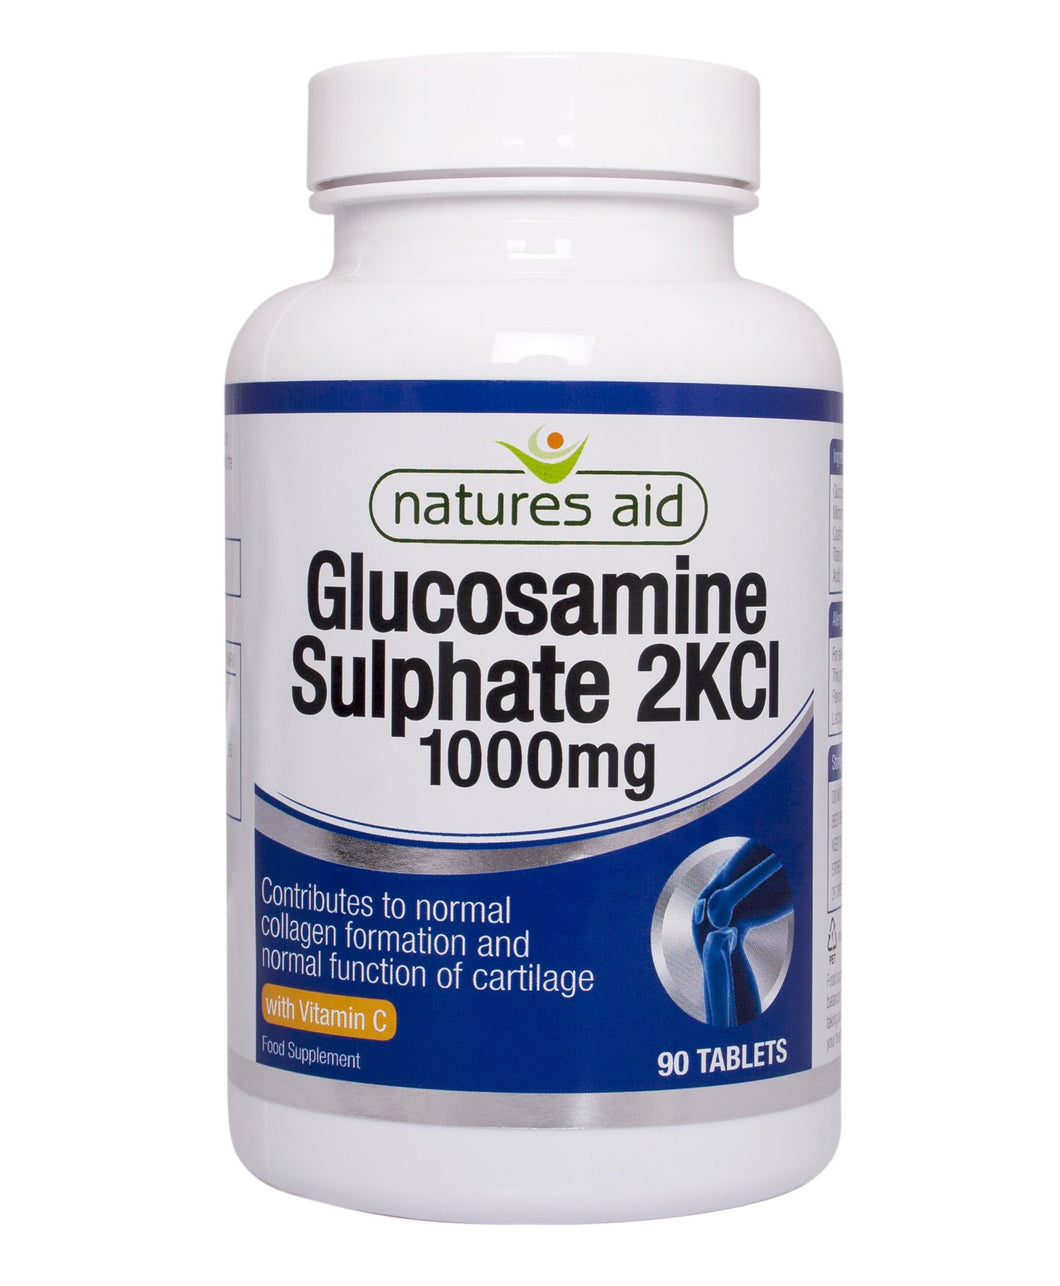 Natures Aid Glucosamine Sulphate 1000mg (with Vitamin C)   90 tabs